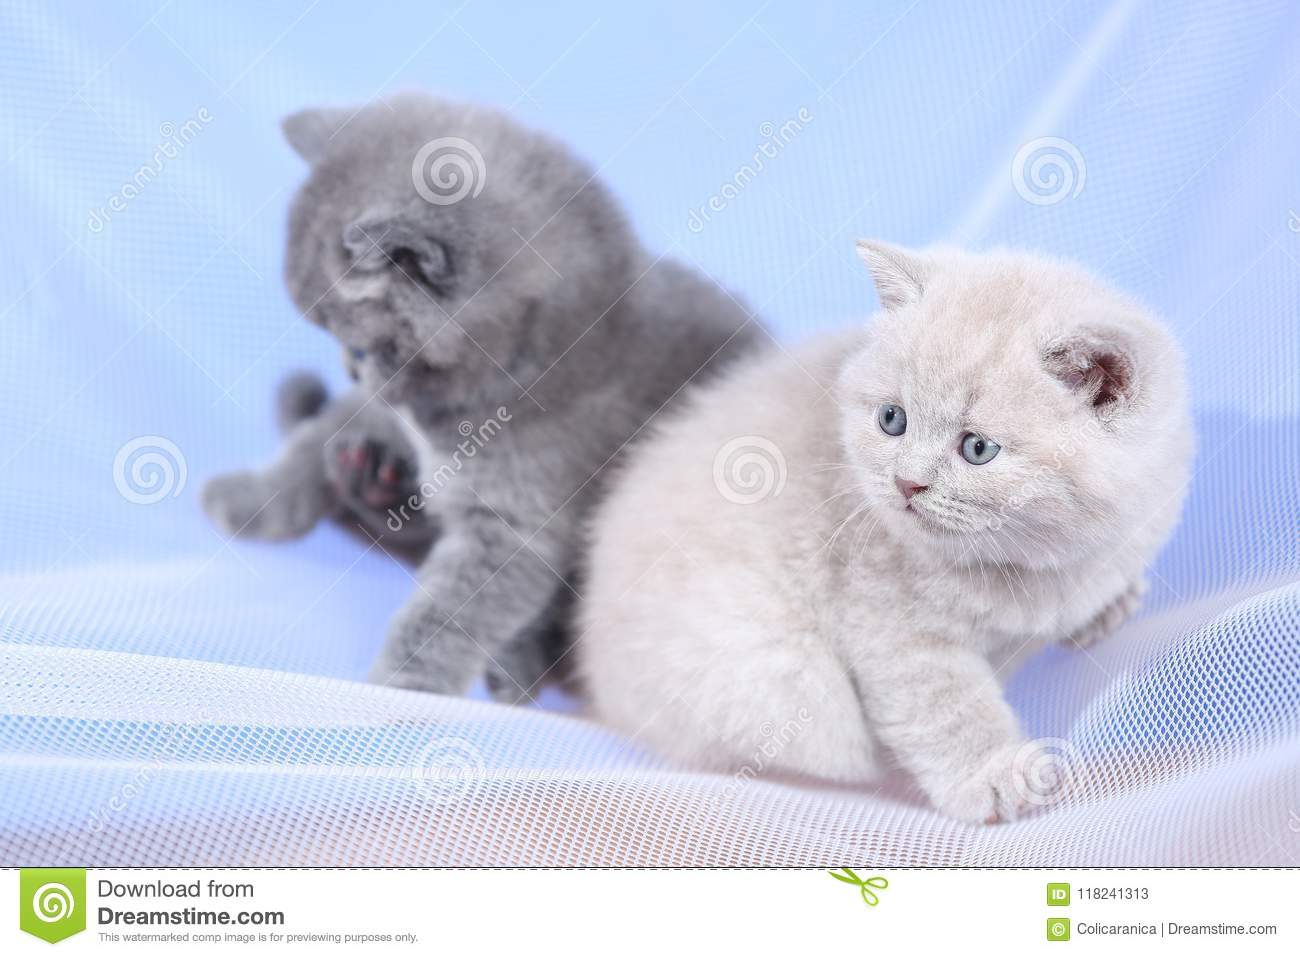 British Shorthair Blue And Lilac Kittens On A White Net Portrait Stock Image Image Of Cute Light 118241313